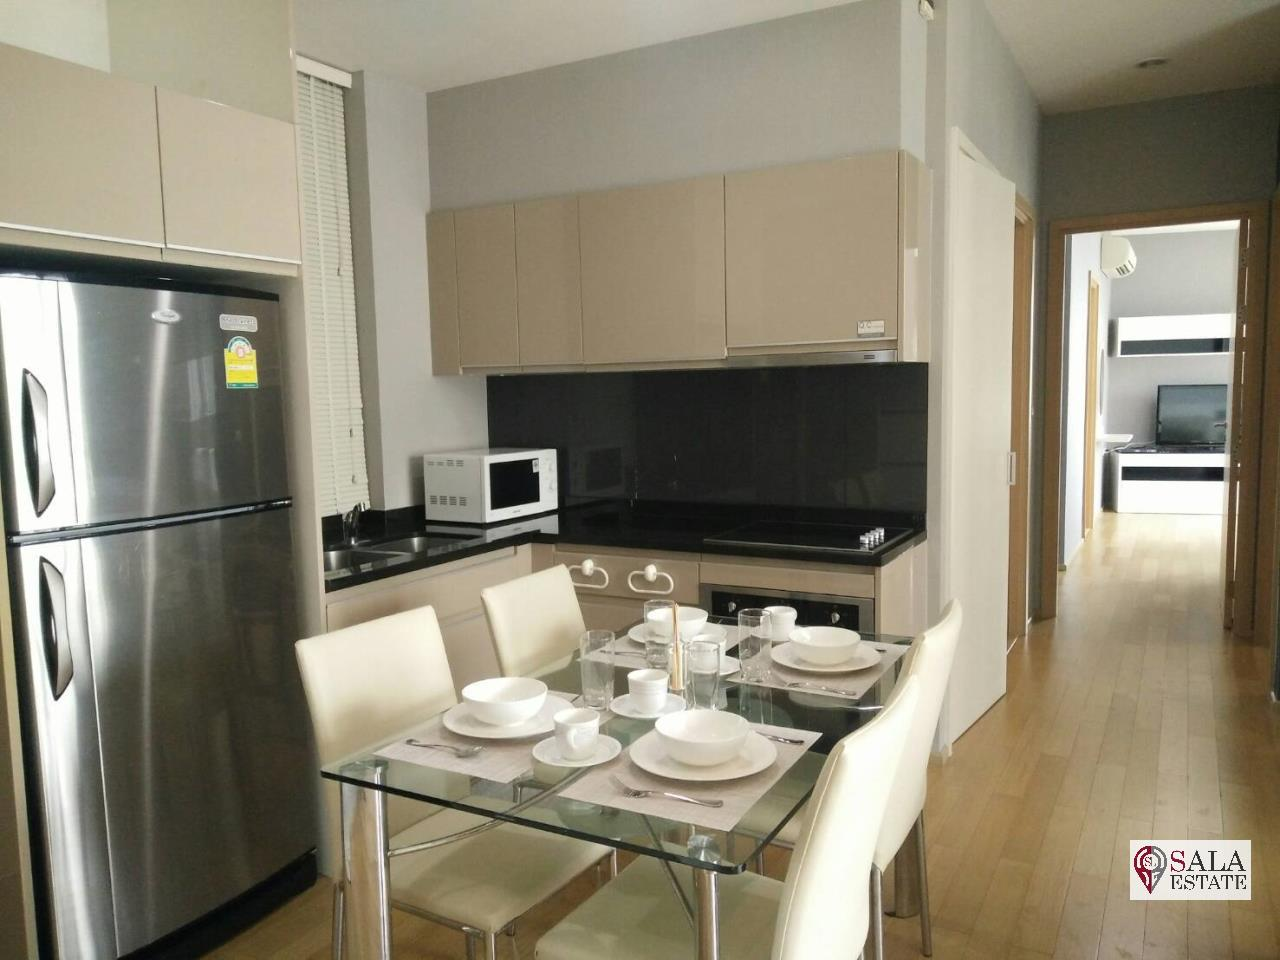 SALA ESTATE Agency's ( SELL WITH TENANT) 39 BY SANSIRI - BTS PROMPONG, 2 BEDROOMS 2 BATHROOMS, FULLY FURNISHED 7